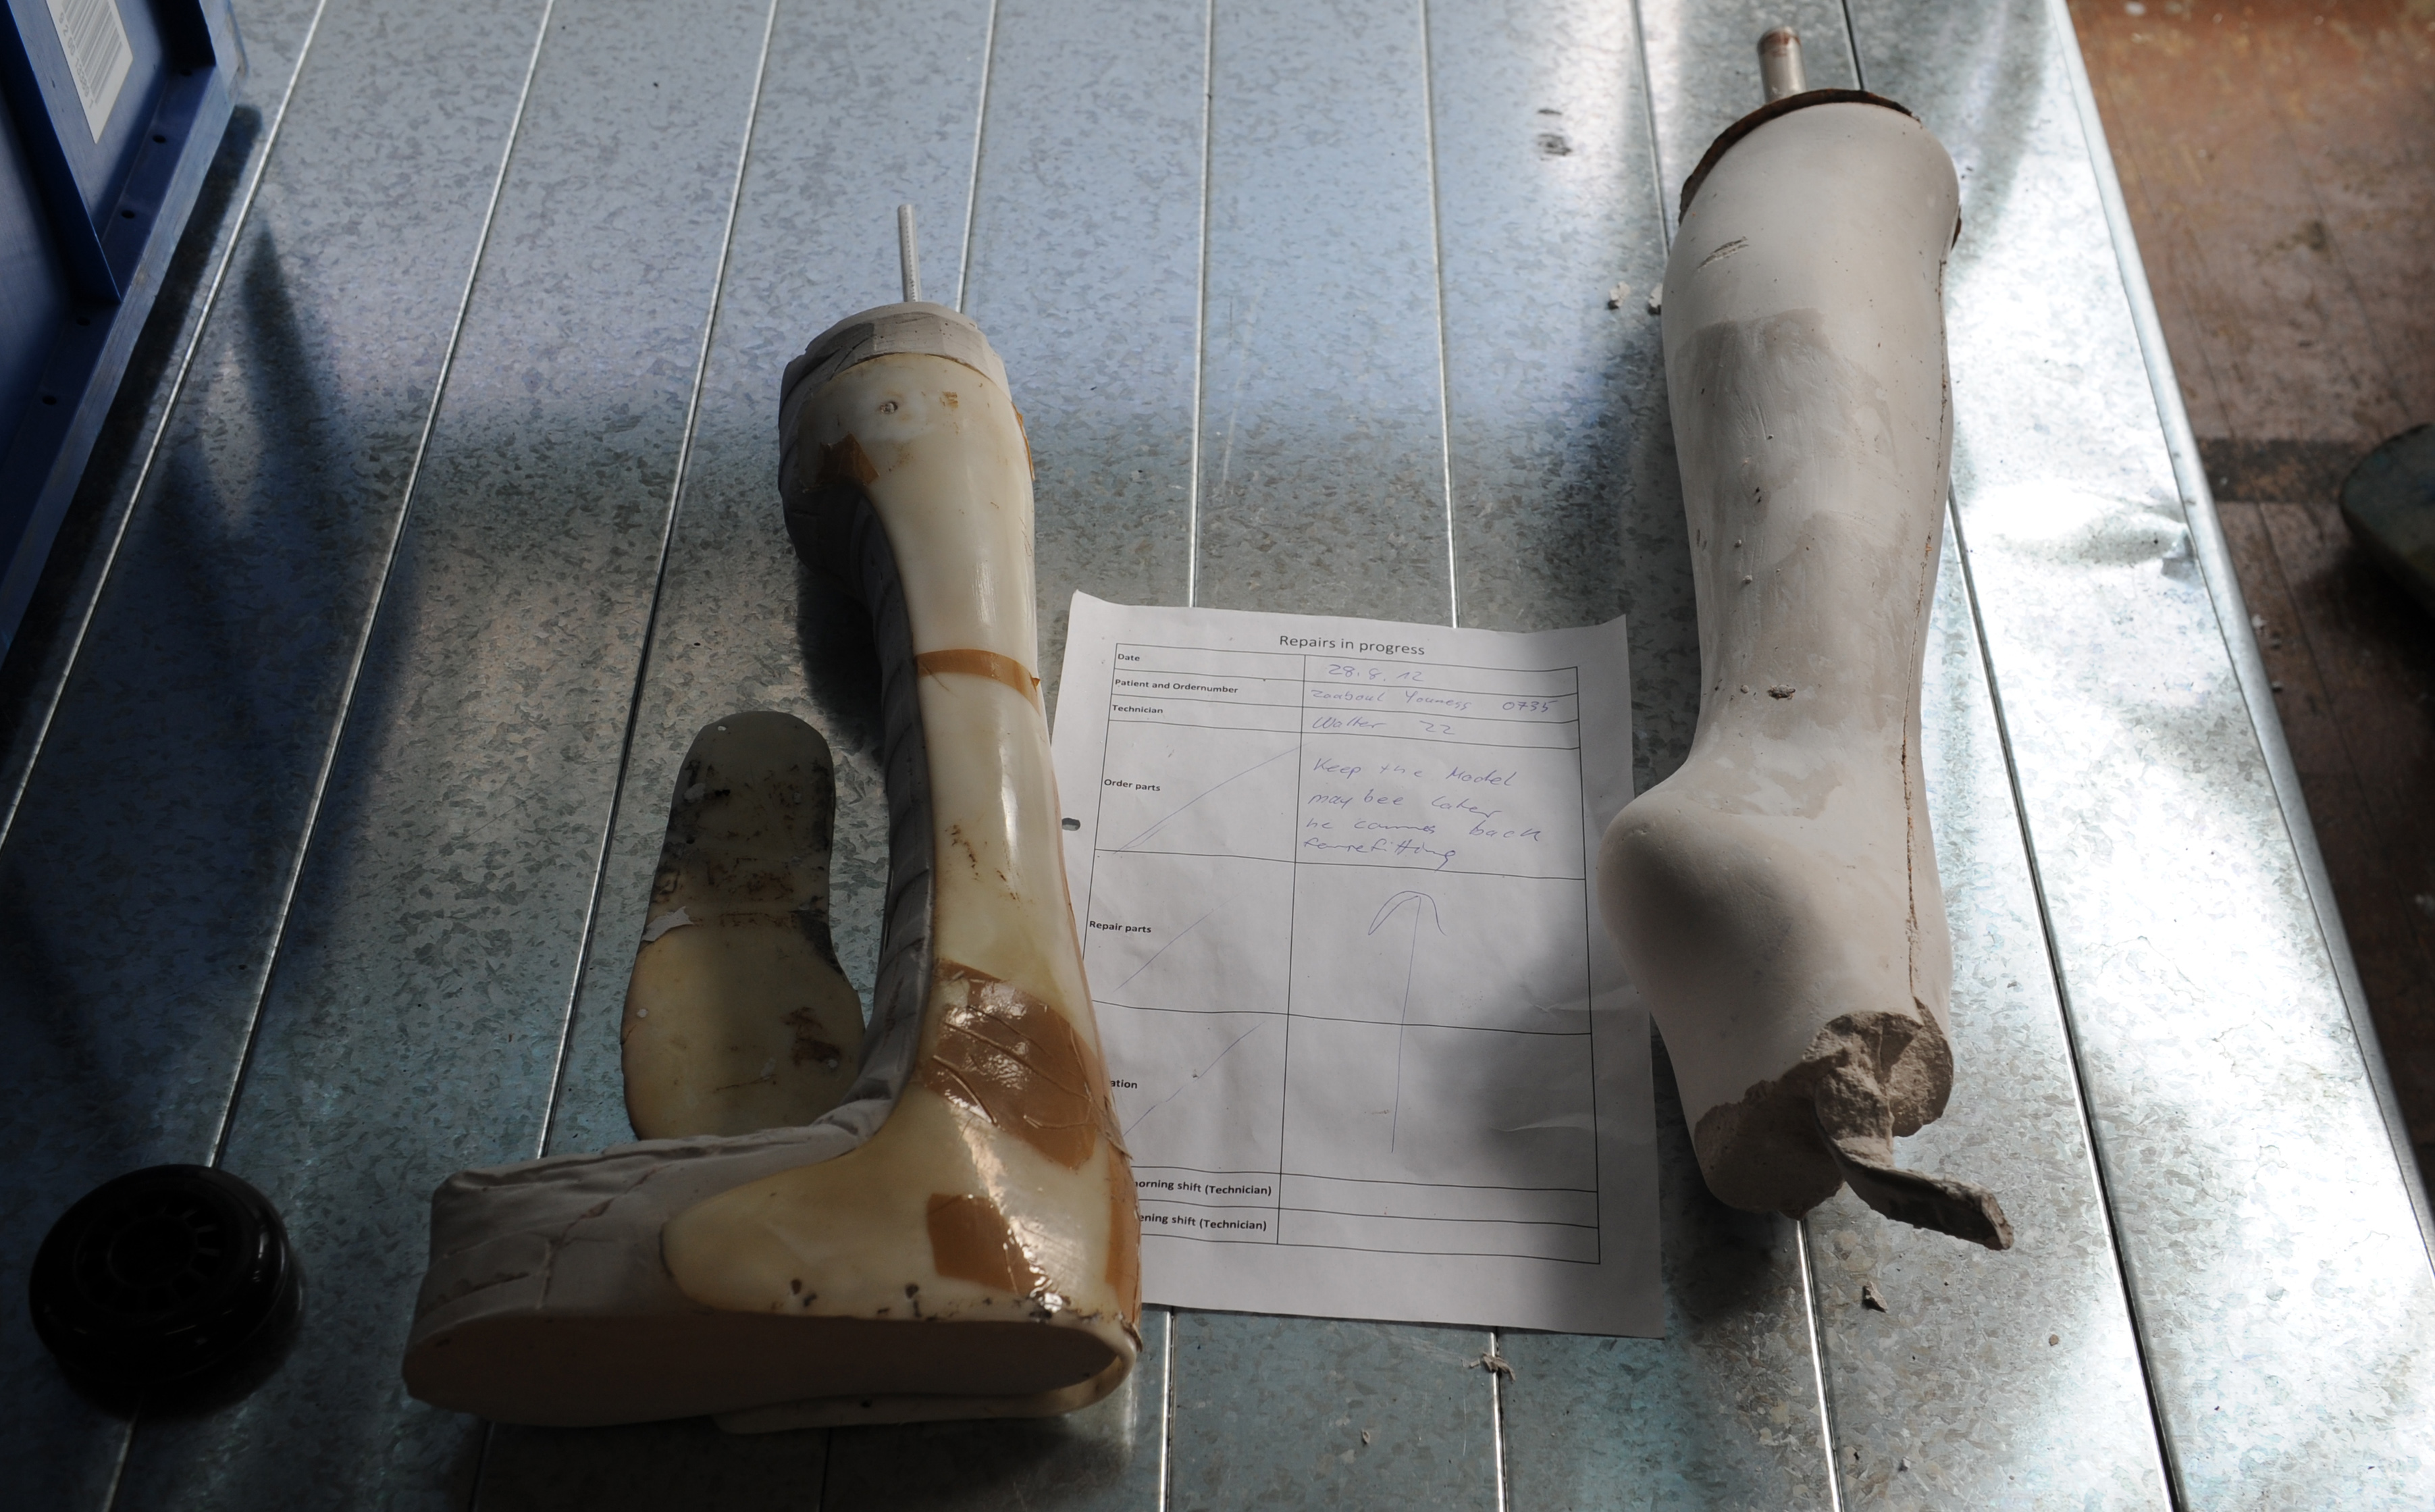 Repairs on athletes' prosthetic limbs are carried out in a workshop